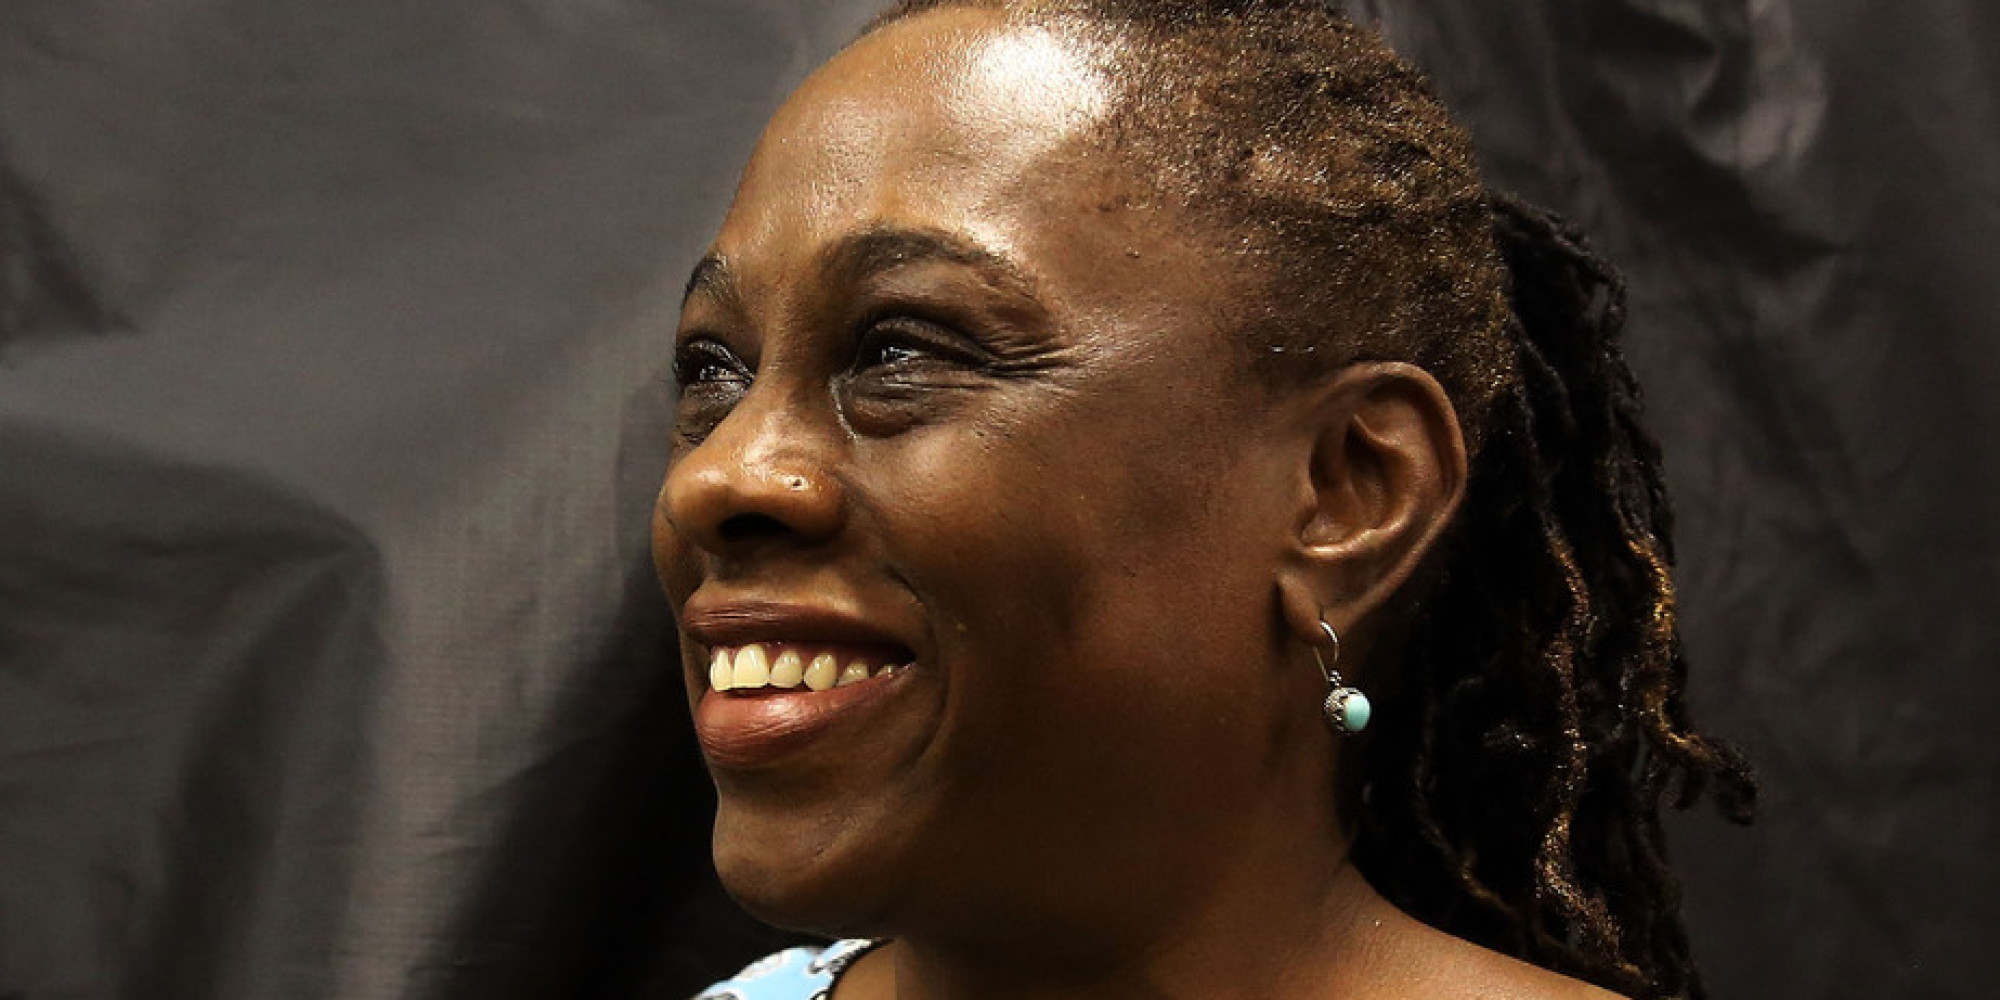 5 Things To Know About Chirlane McCray Who Might Be NYCs Next First Lady